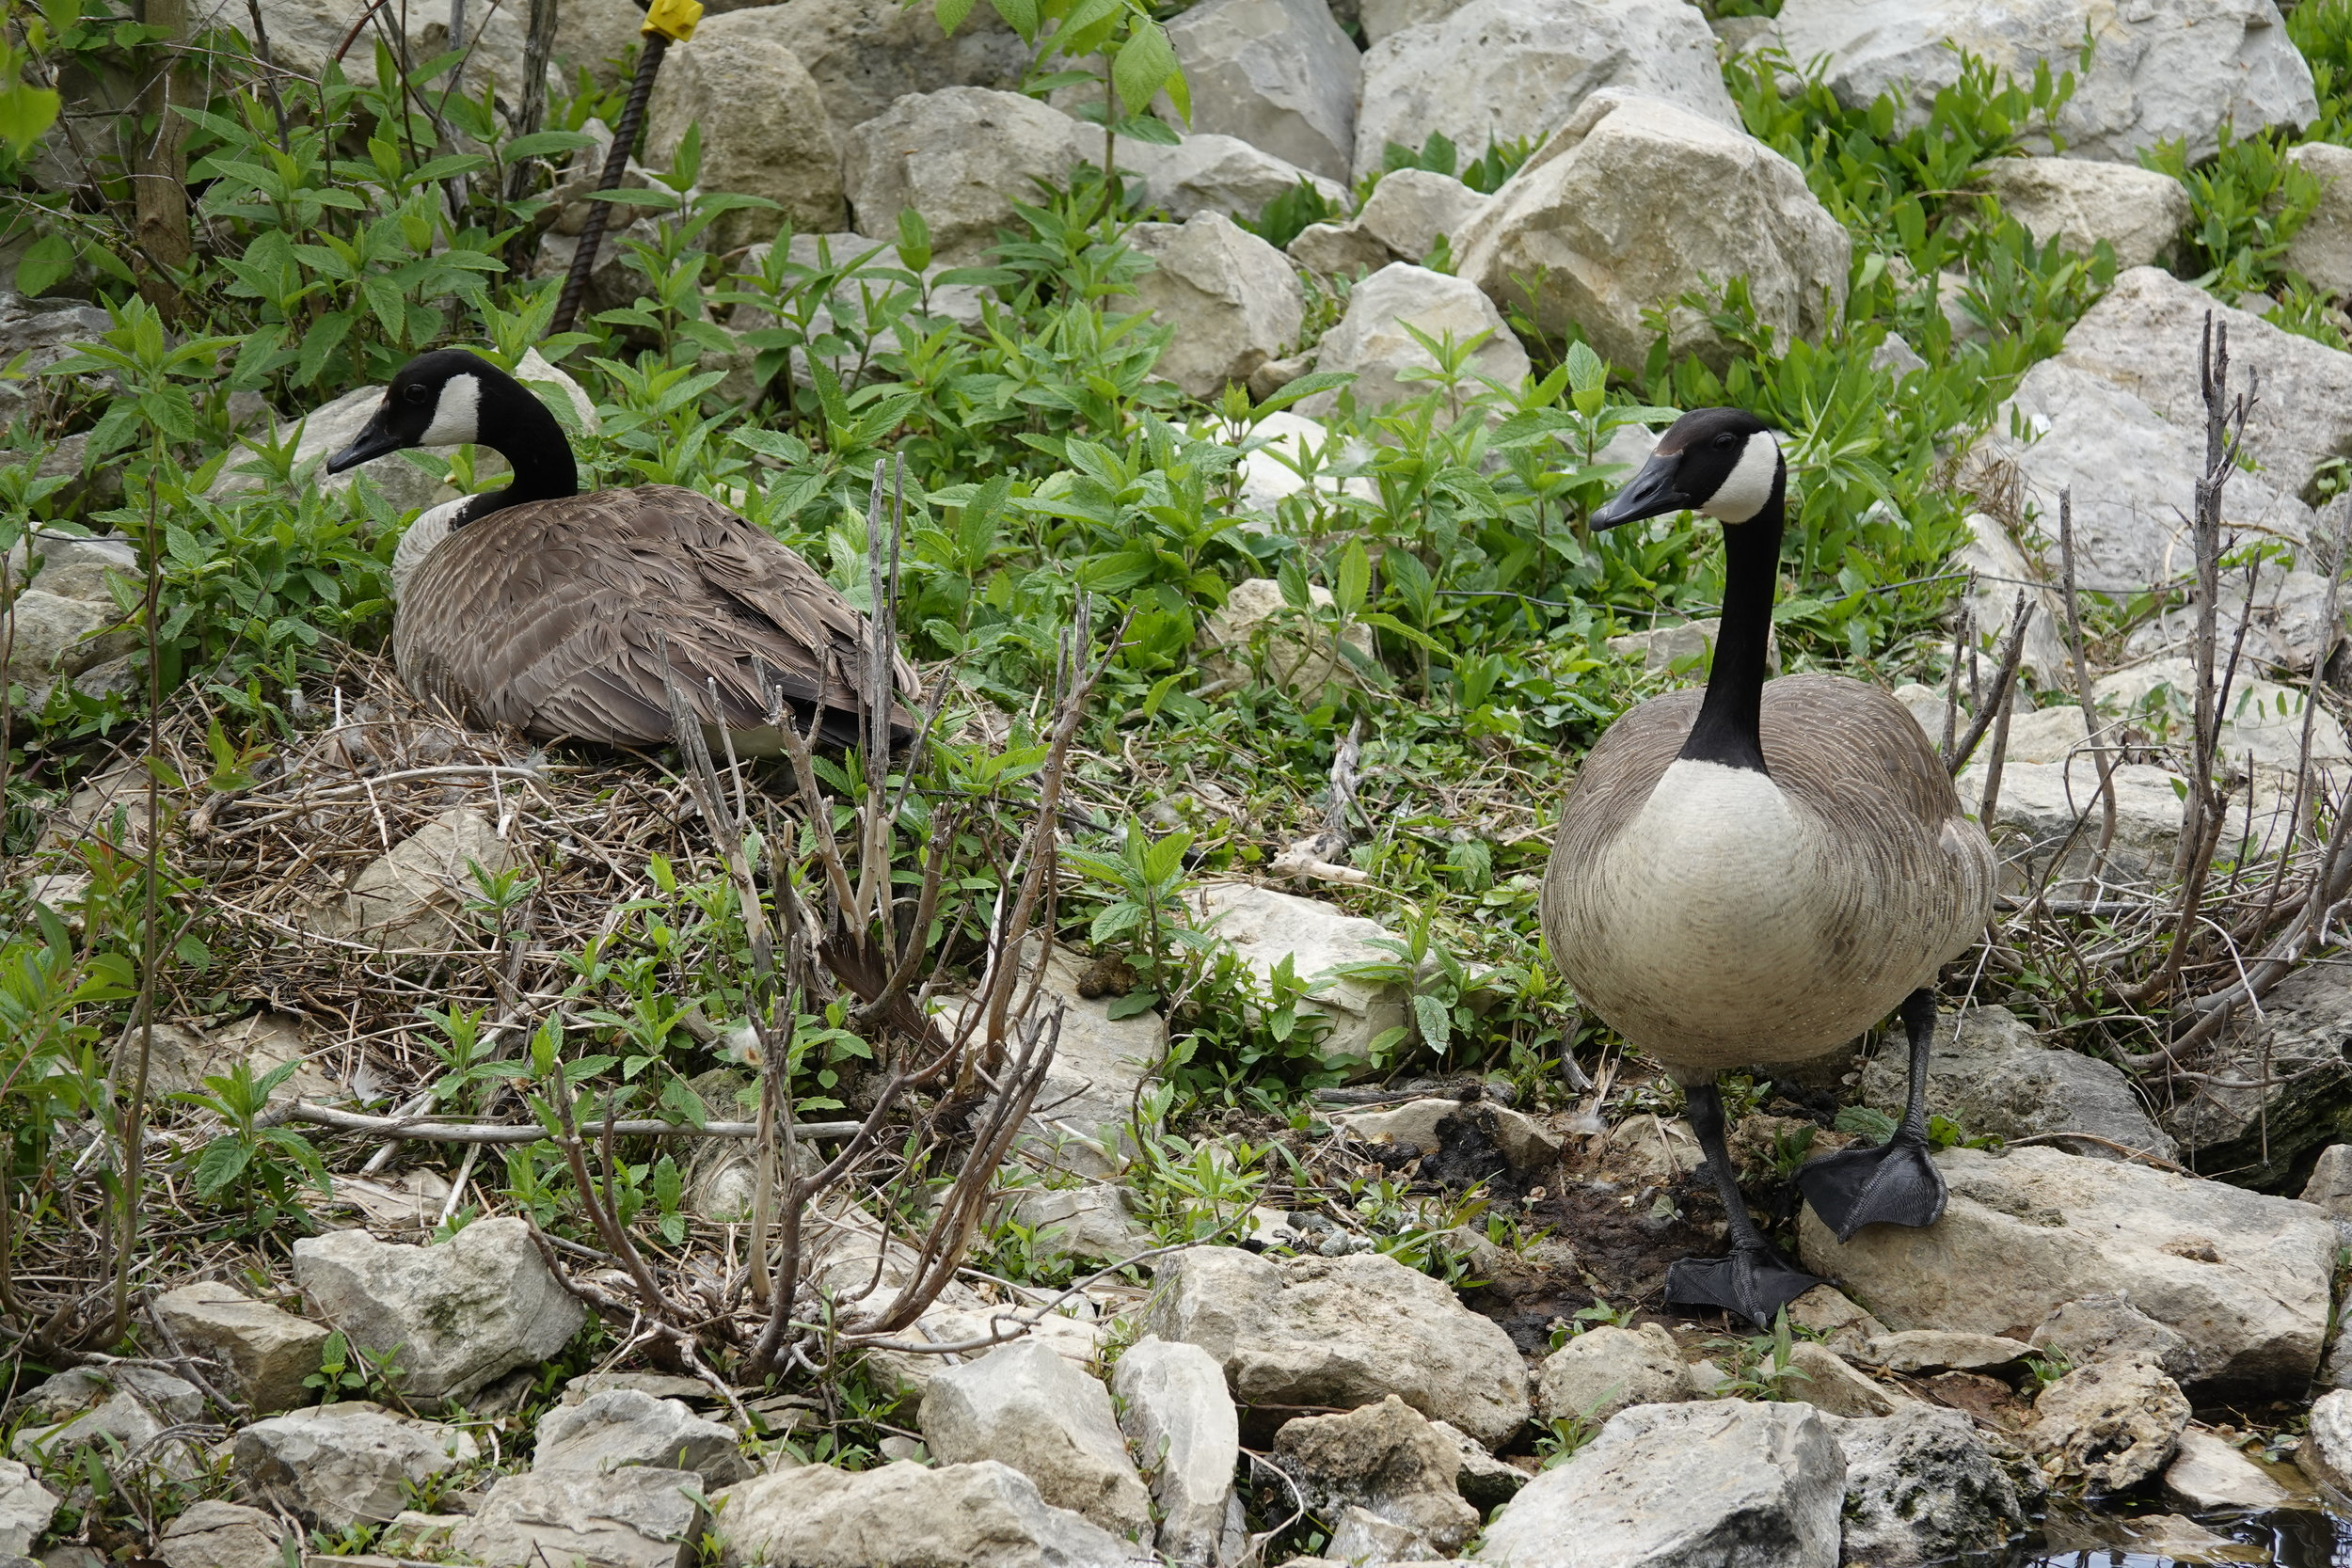 A nesting pair of Canada geese. Their relationship was on the rocks.